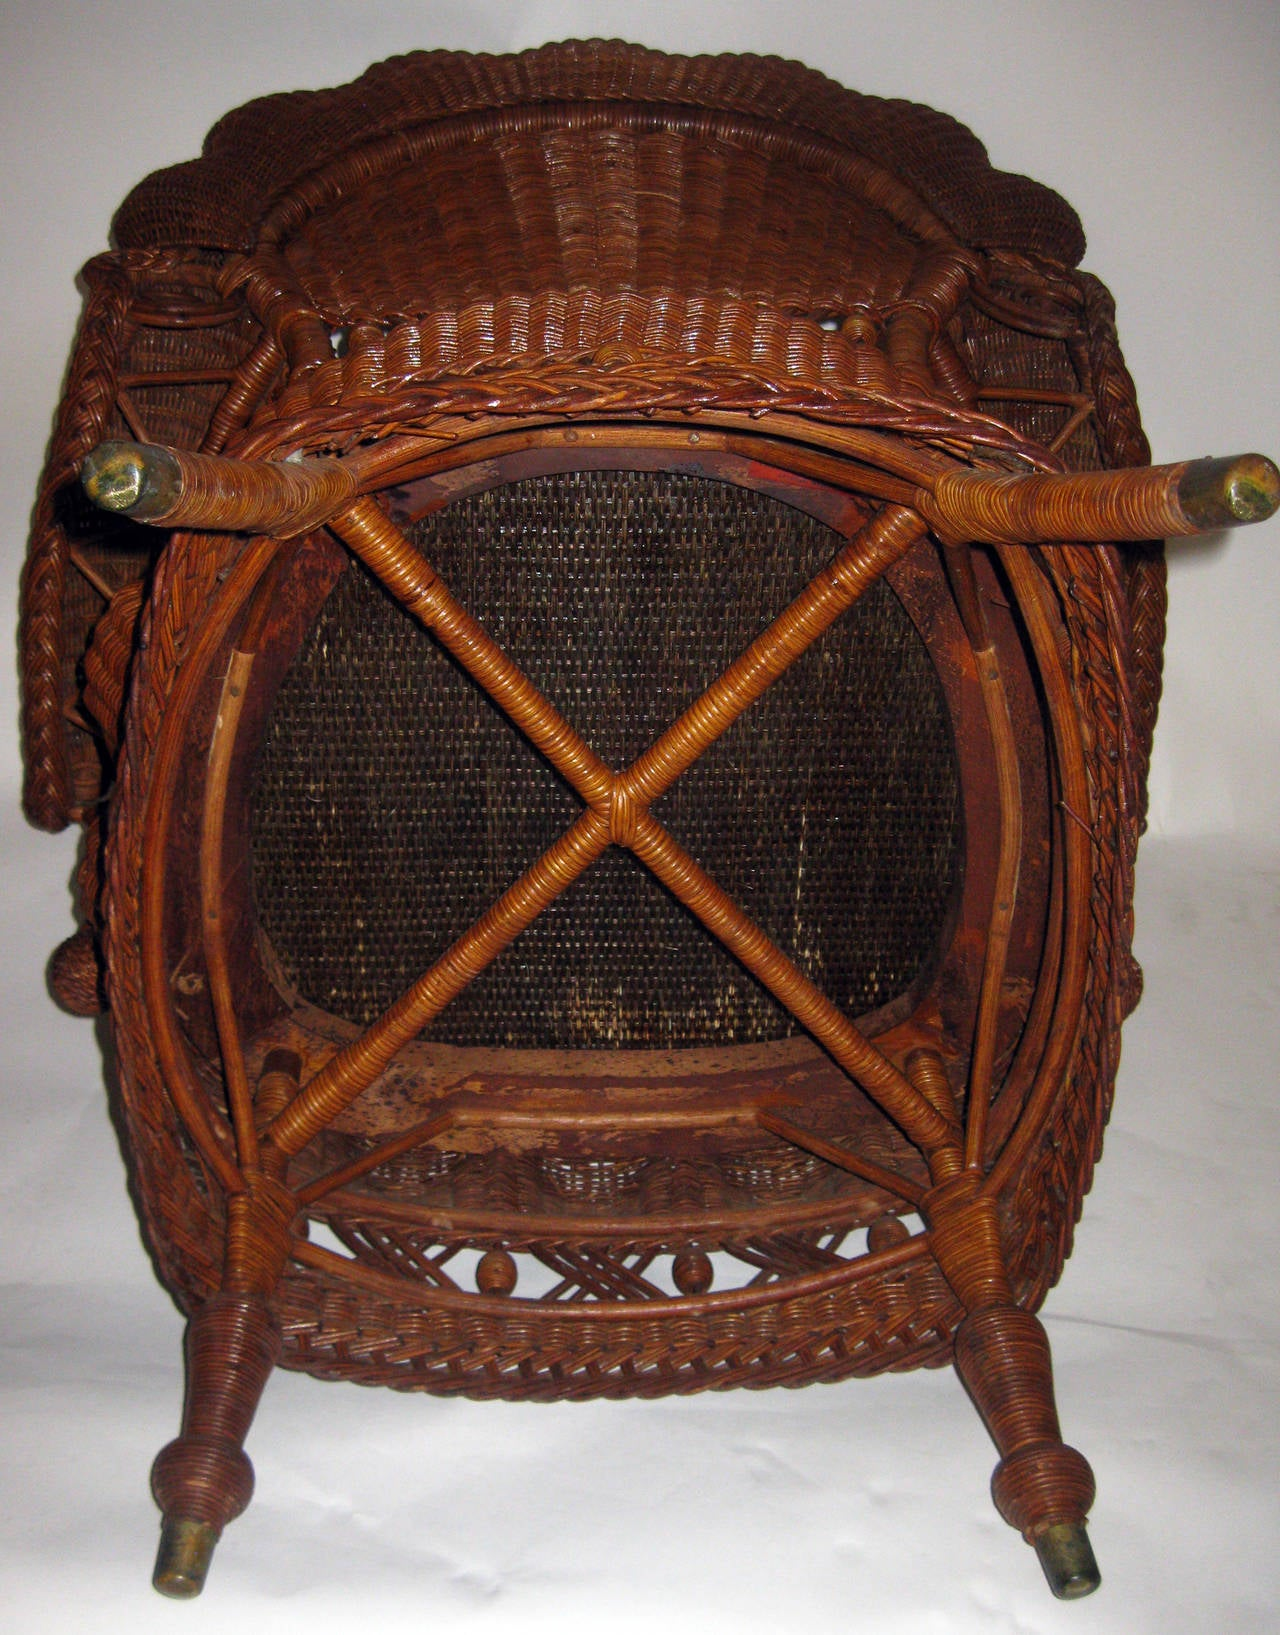 19th Century American Wicker Heywood Brothers Armchair 3